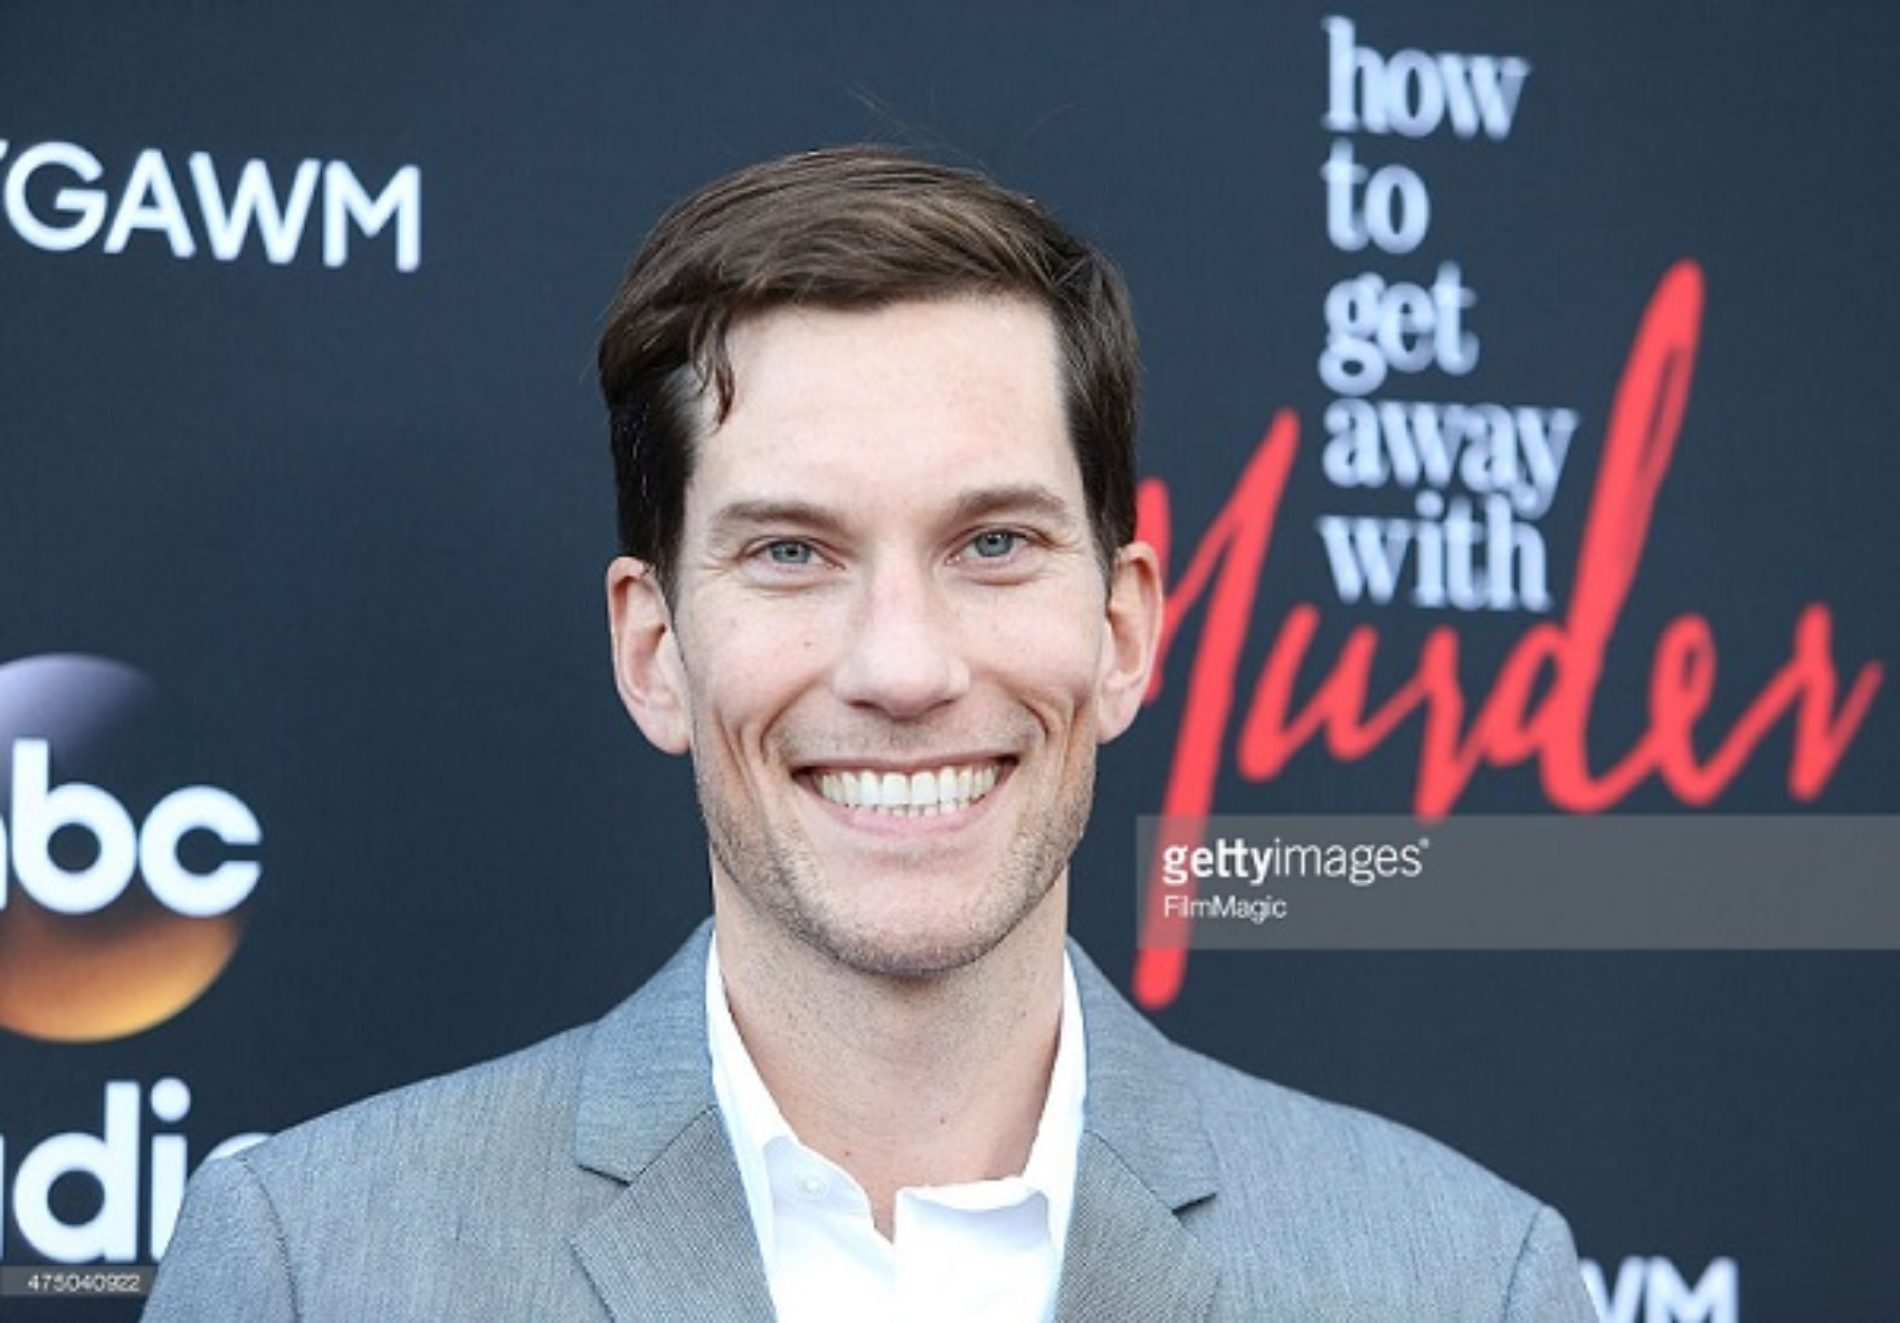 'How to Get Away with Murder' Creator Peter Nowalk Talks about Sex on the Show